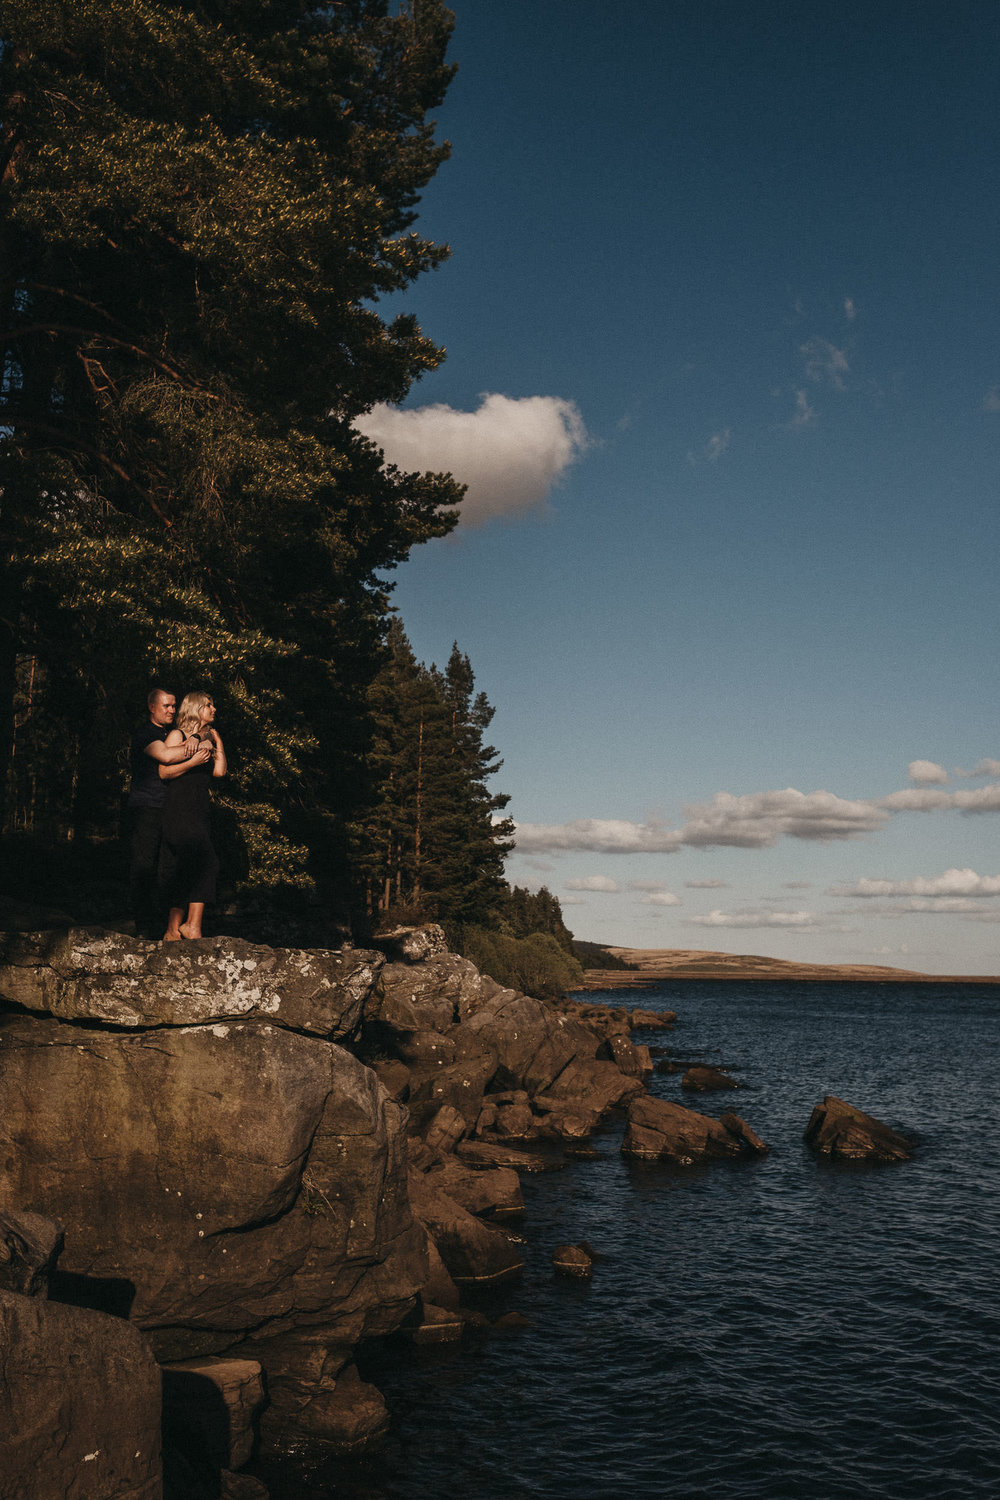 Engaged couple standing on rock above water with trees behind